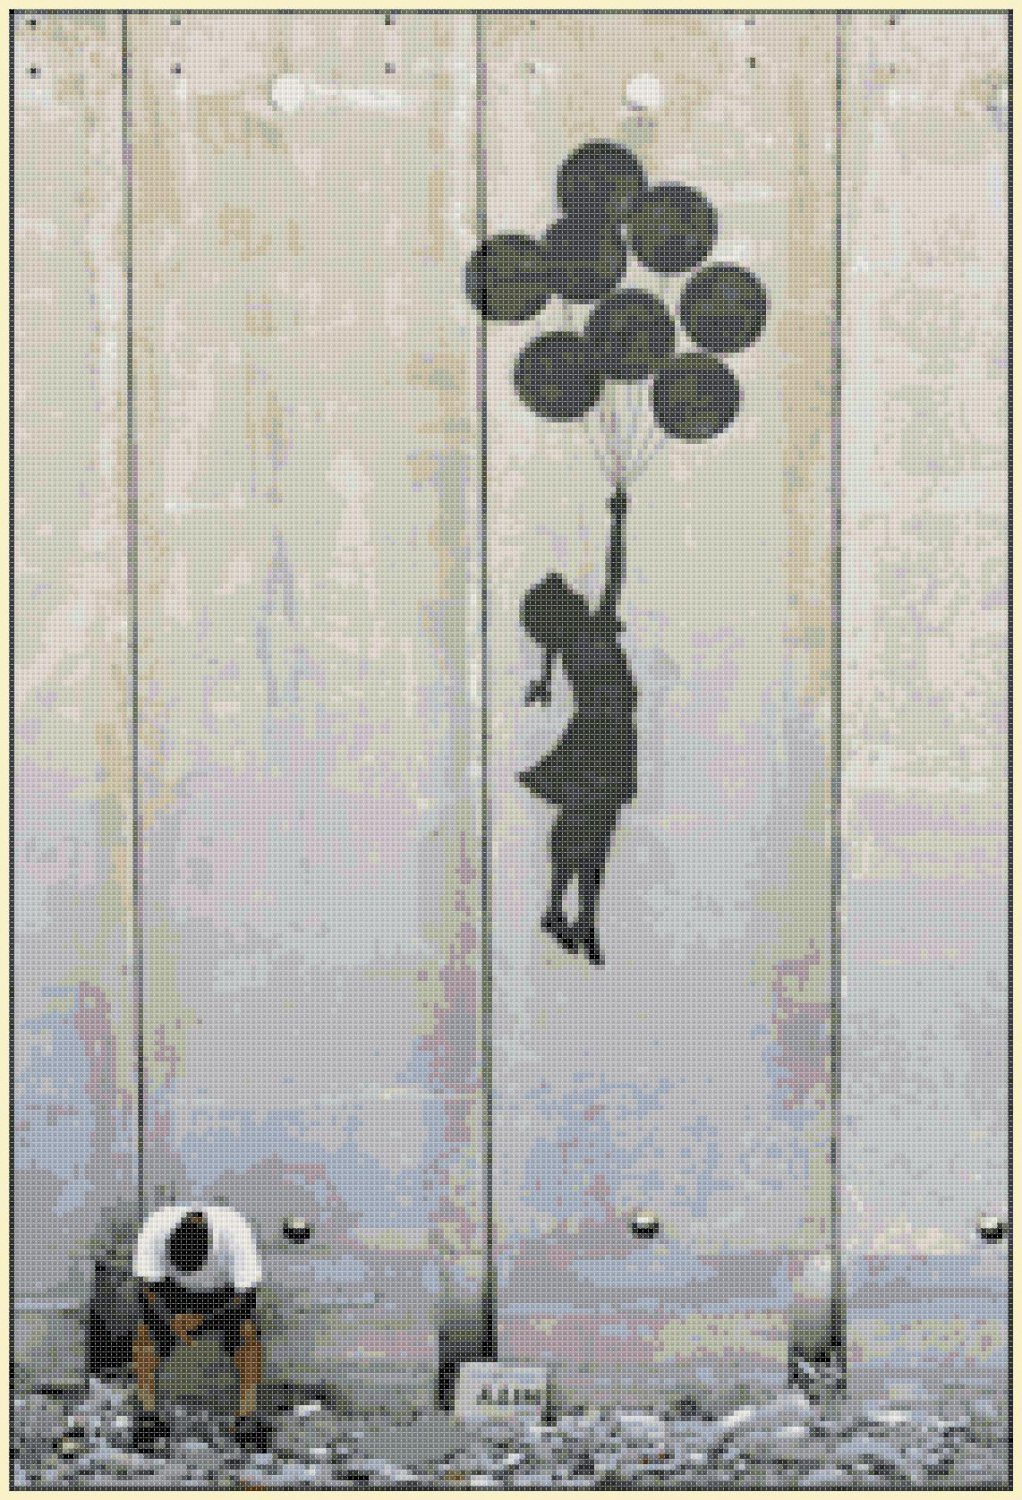 "girl with ballons murales by banksy Cross Stitch Pattern street art - 13.36"" x 19.71"" - E1367"